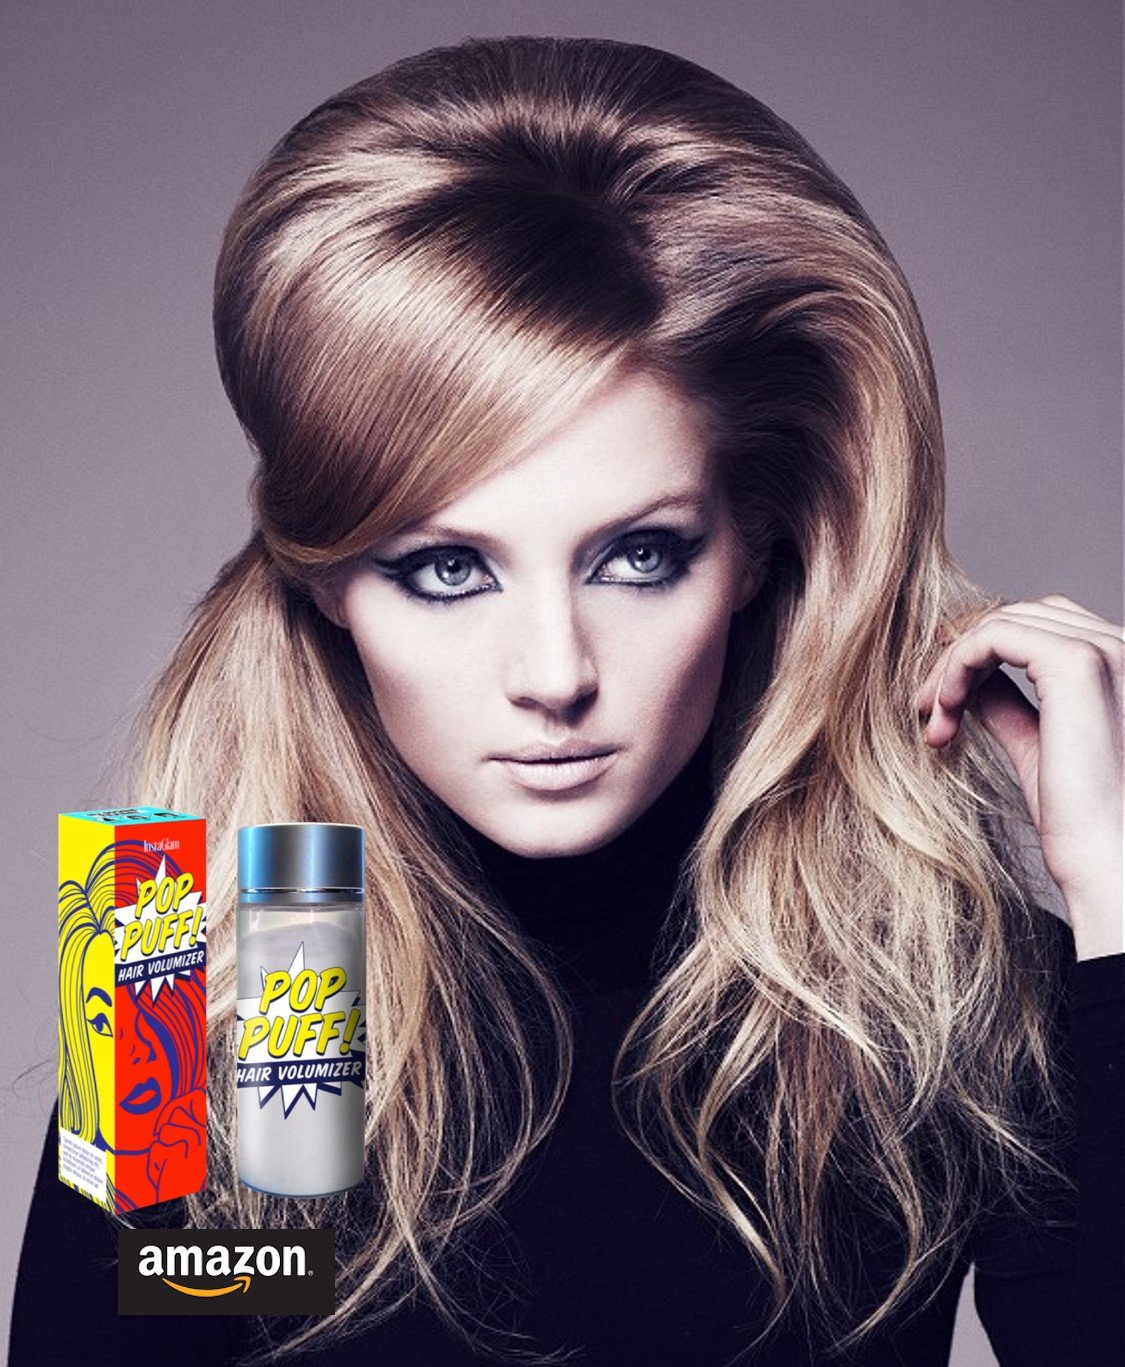 POP PUFF Hair Volumizer, Hair styling powder, Mattifying powder China